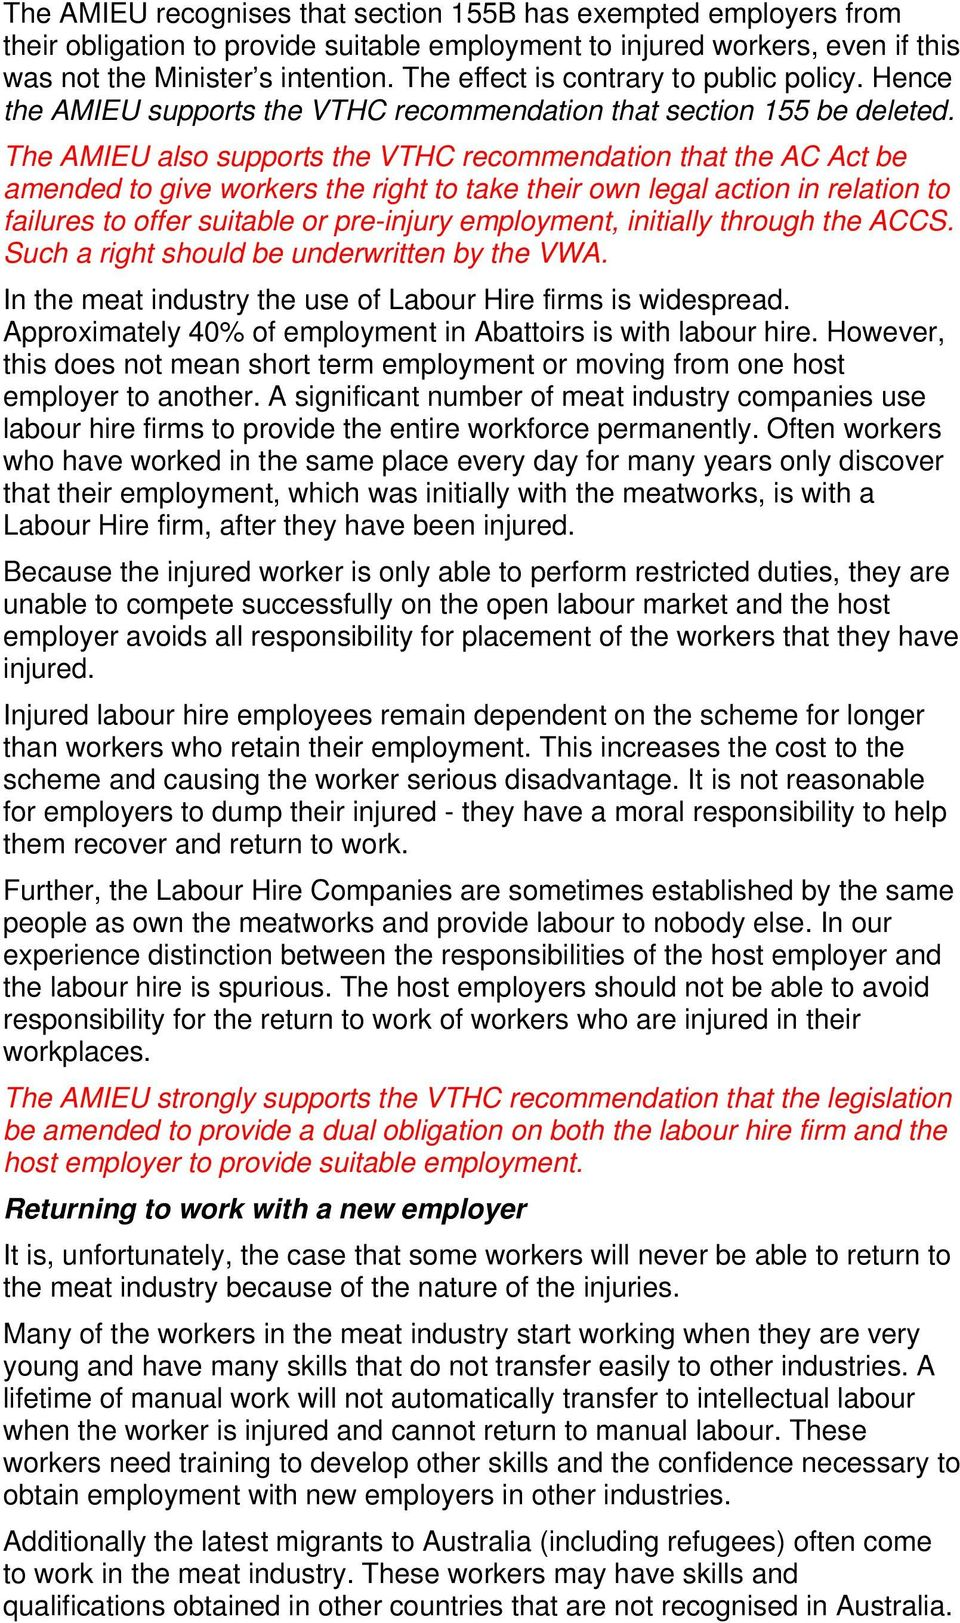 The AMIEU also supports the VTHC recommendation that the AC Act be amended to give workers the right to take their own legal action in relation to failures to offer suitable or pre-injury employment,